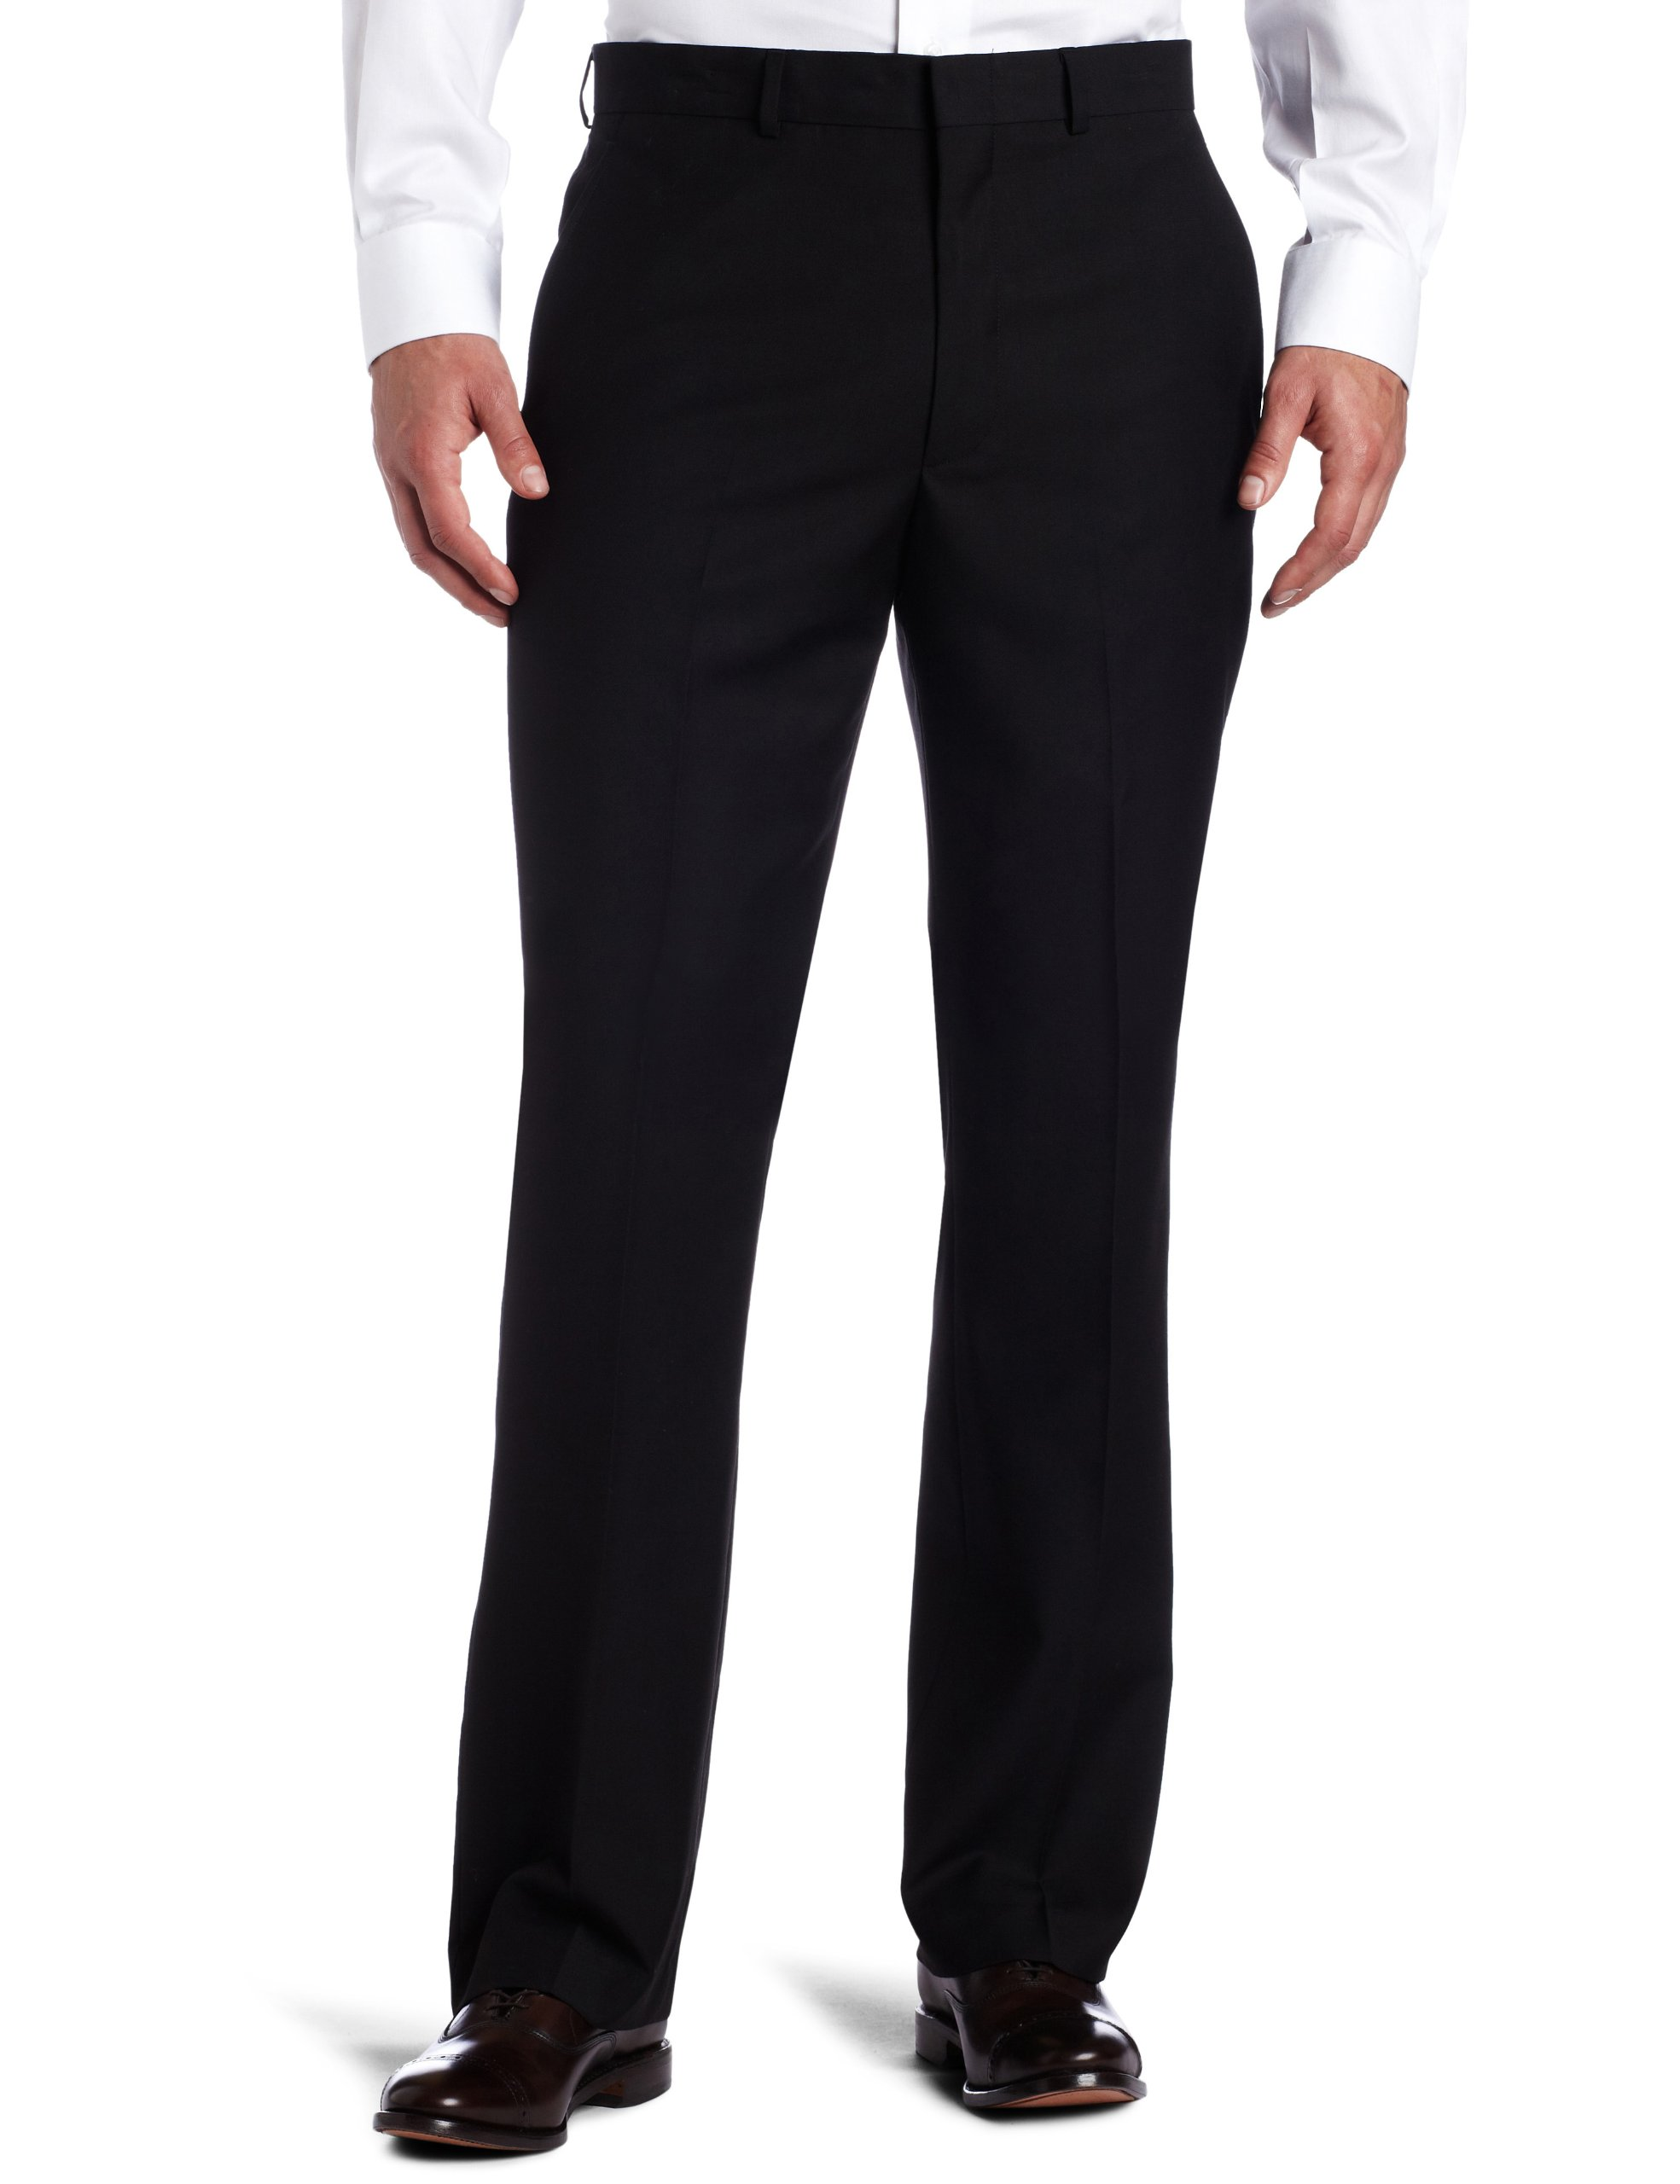 Kenneth Cole REACTION Men's Black Solid Suit Separate Pant, Black, 42x30